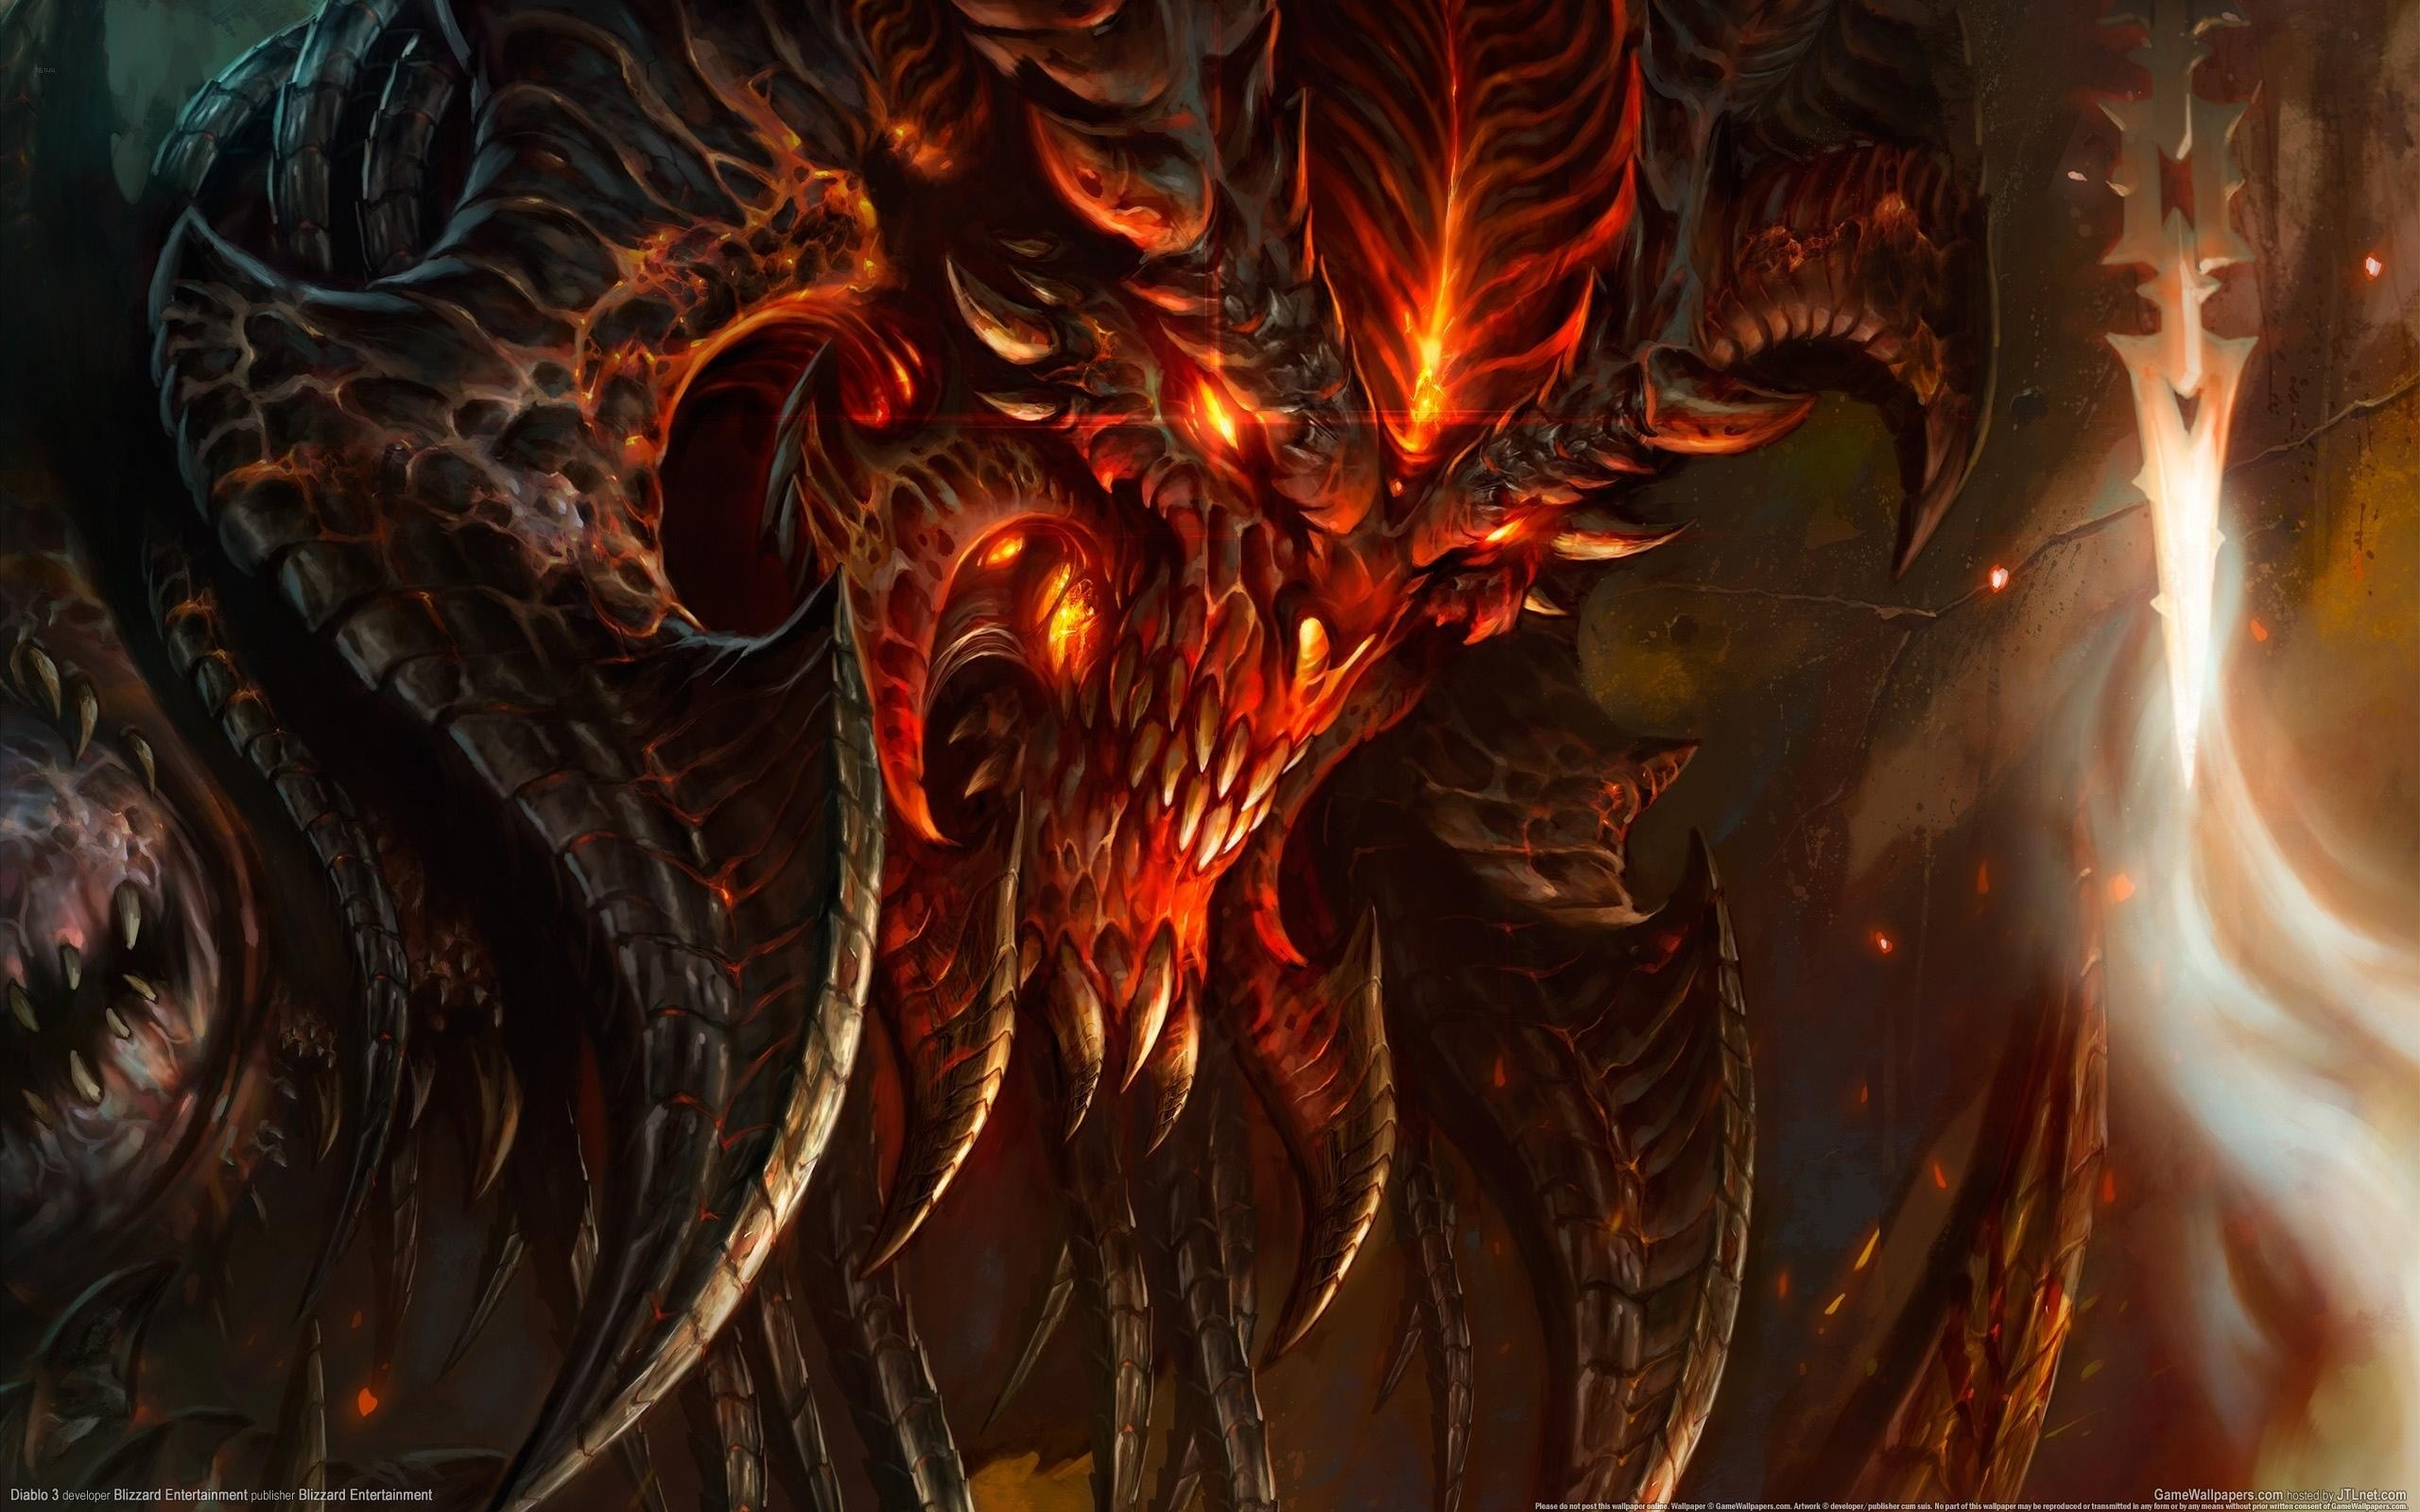 Res: 2560x1600, immortal lives images demon HD wallpaper and background photos